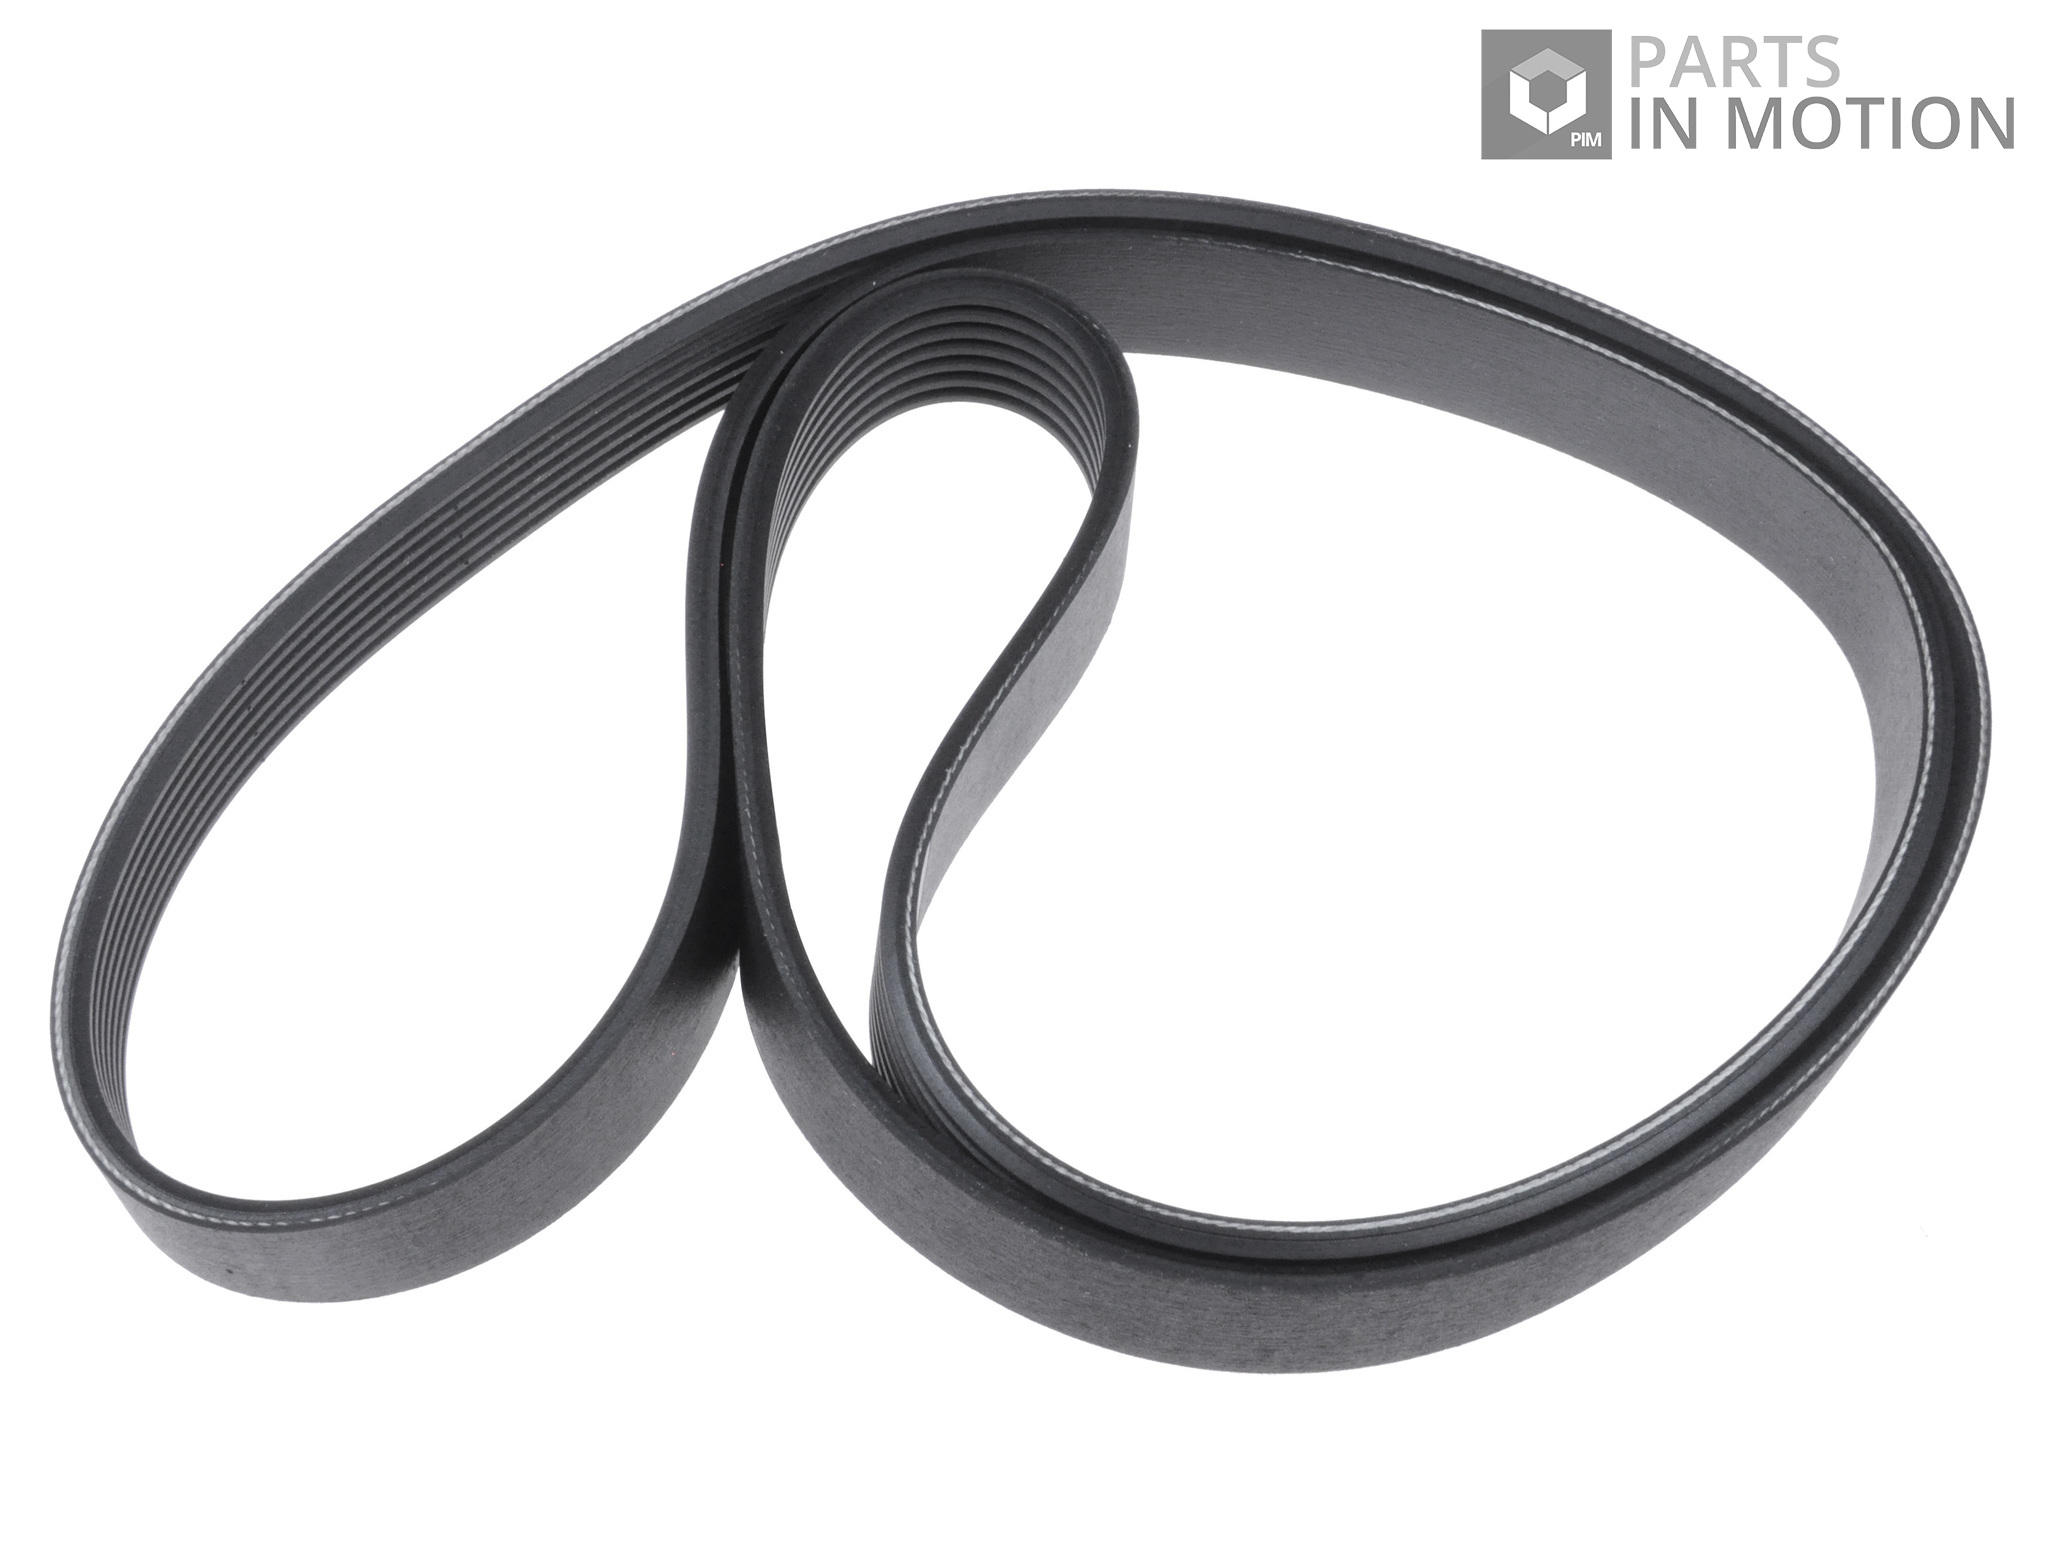 Multi V Drive Belt Ad07r2264 Blue Print 38920rbde01 38920rbde02 Timing And Pulley Drives Power Transmission Products Leeds